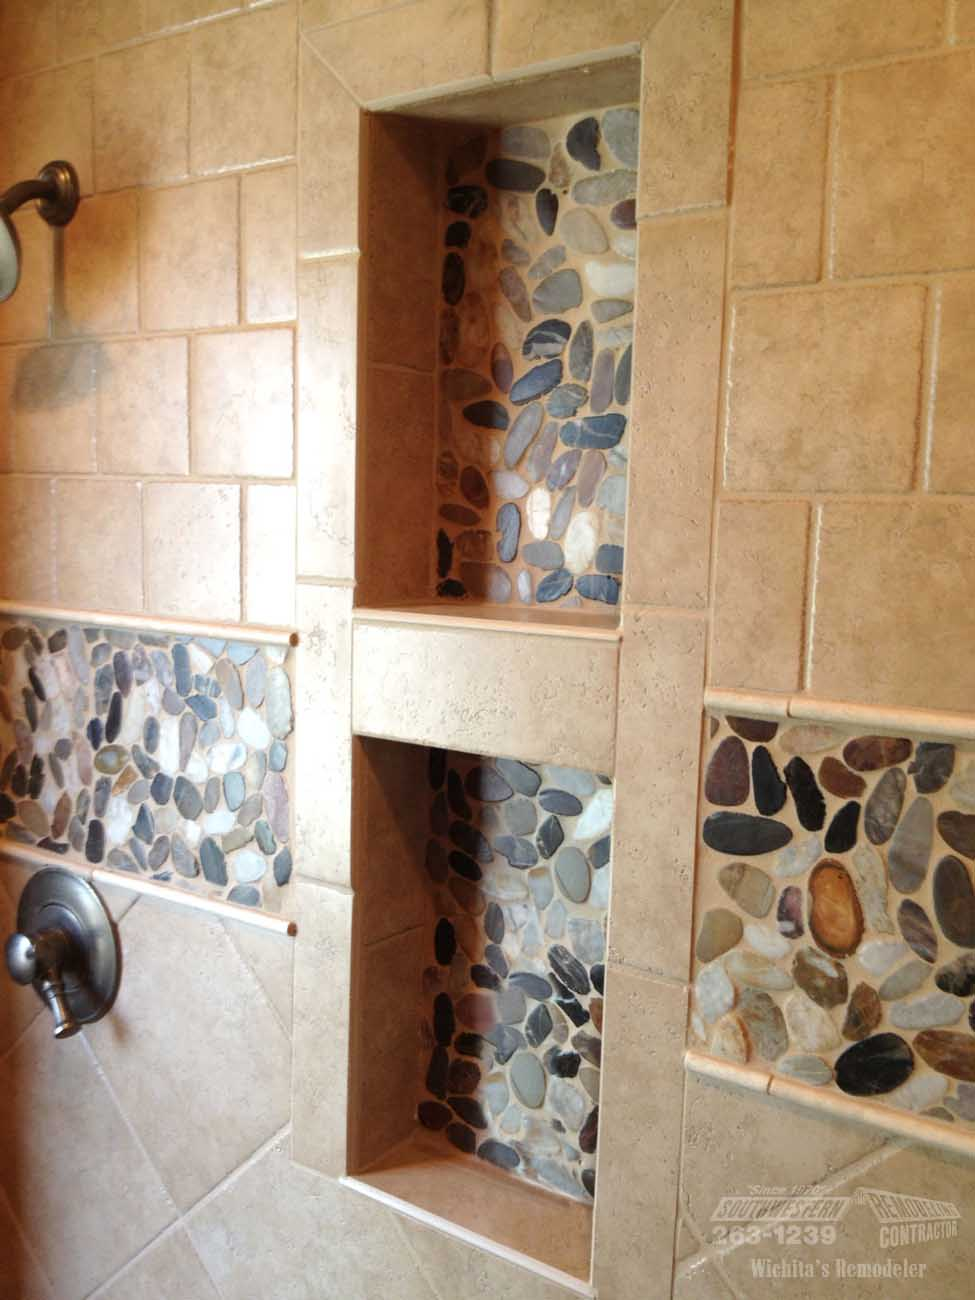 Bathroom Remodel Wichita Ks bathroom remodeling | southwestern remodeling | wichita